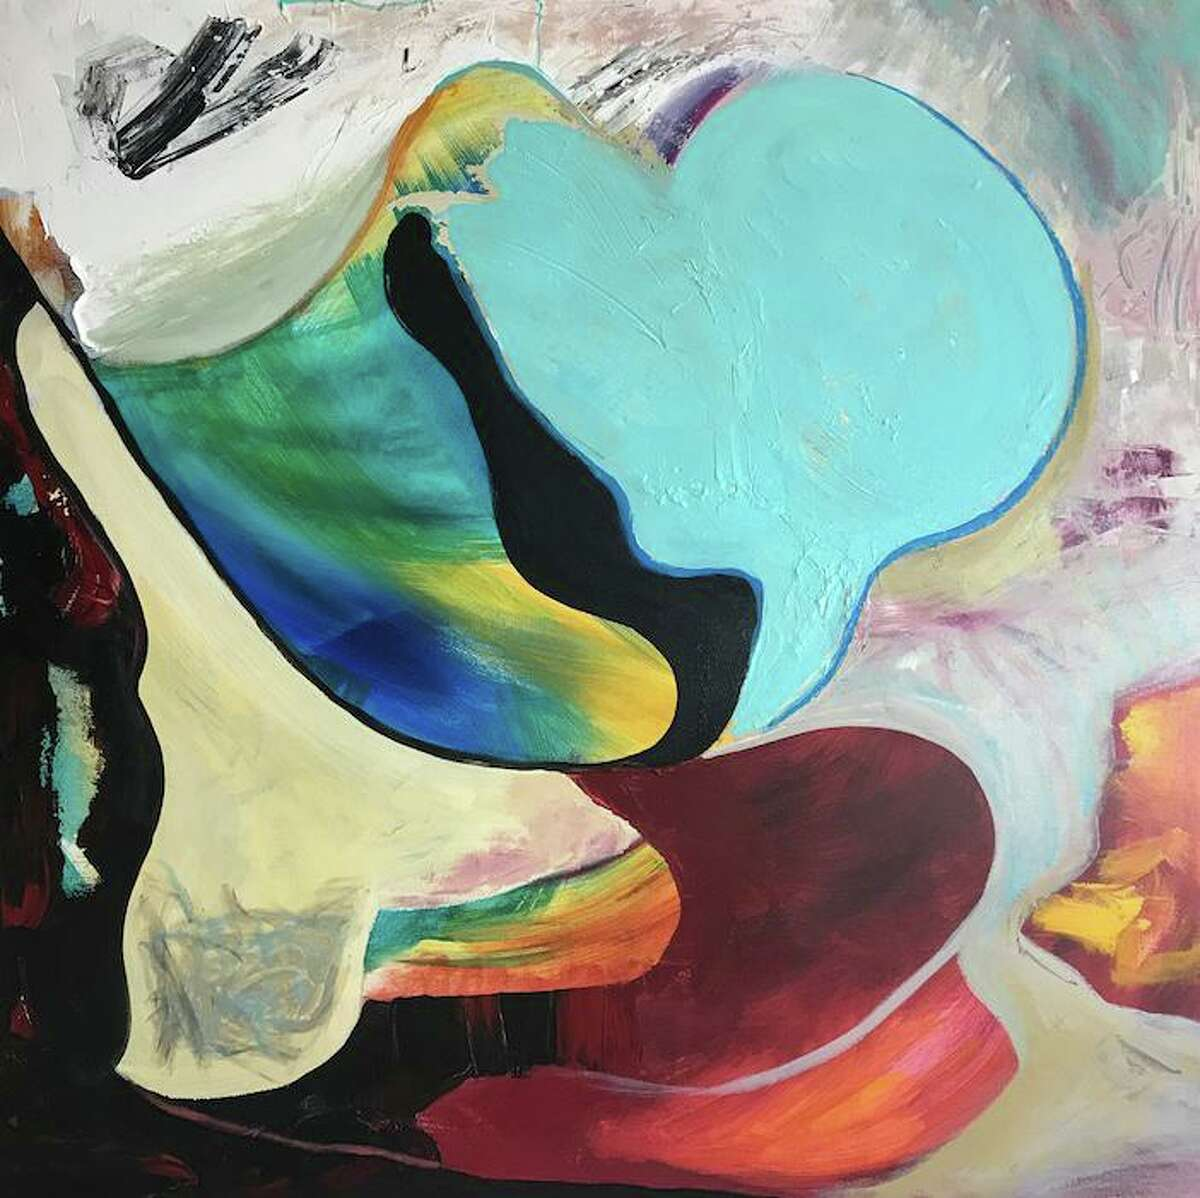 The Summer Salon Guild Exhibition runs through Aug. 21 at the Silvermine Galleries, 1037 Silvermine Road, New Canaan. The exhibition includes more than 130 Guild artists from across the country. For more information, visit silvermineart.org.